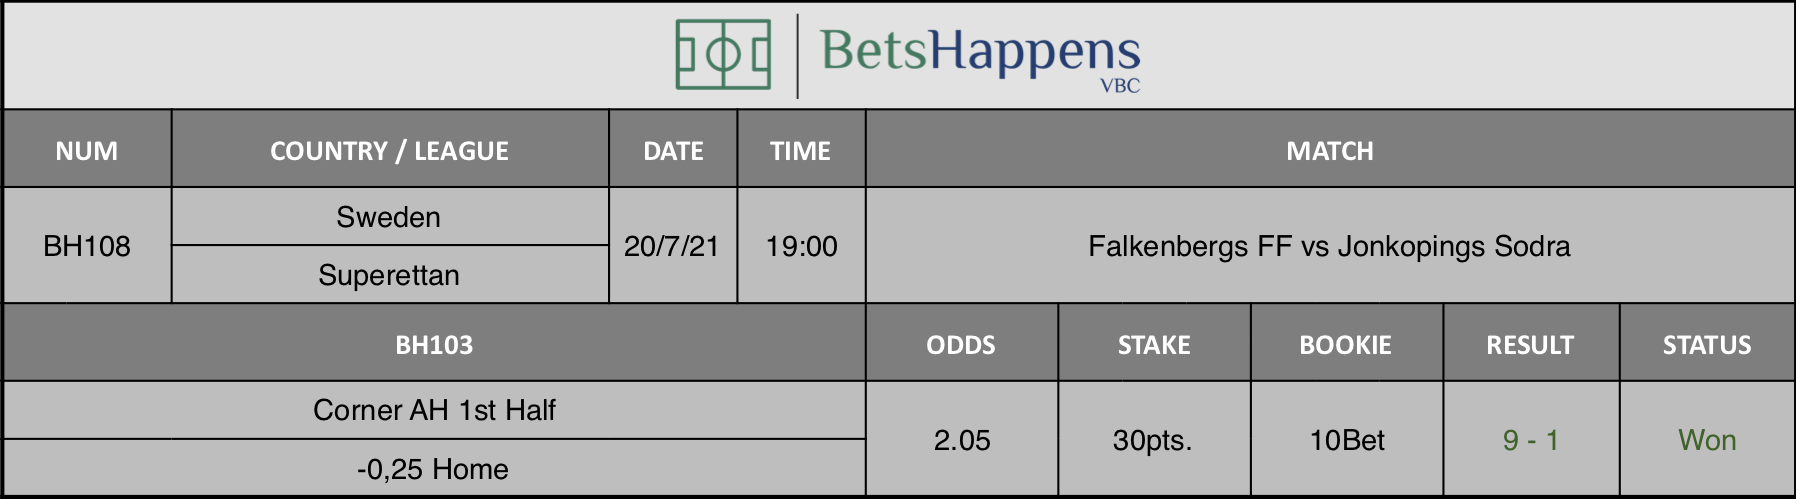 Results of our advice for the Falkenbergs FF vs Jonkopings Sodra match in which Corner AH 1st Half -0,25 Home is recommended.